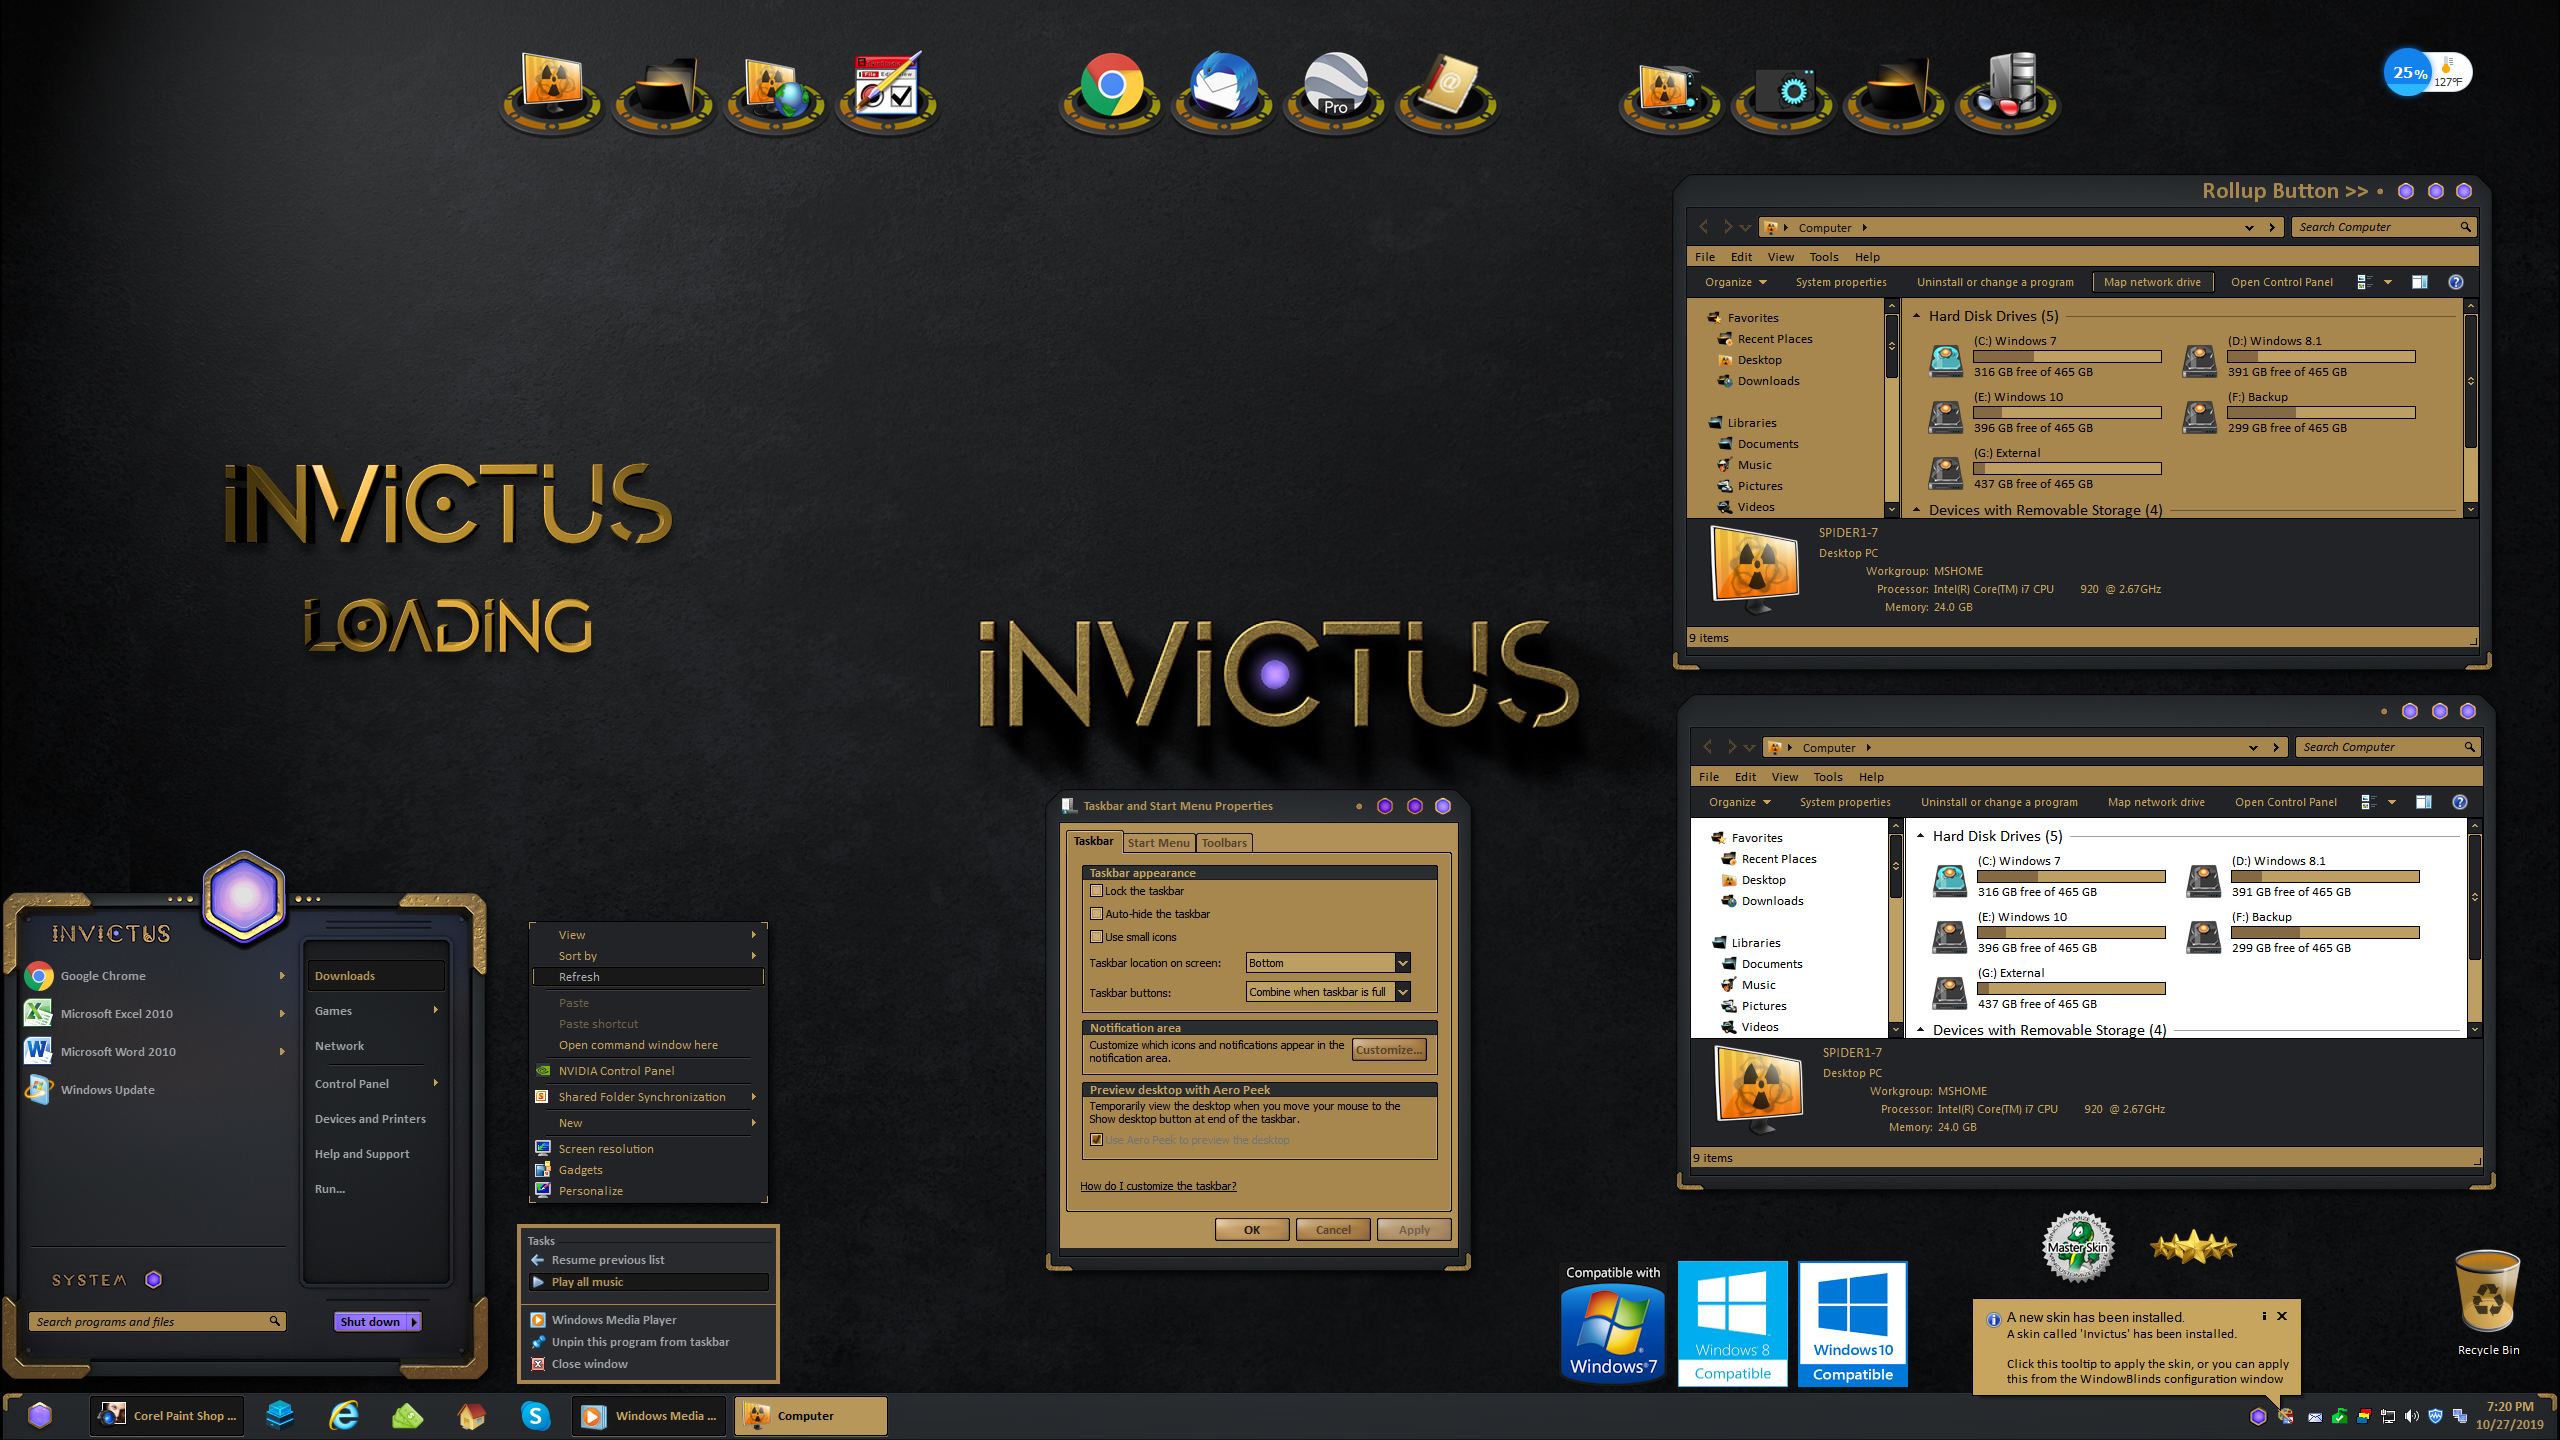 Invictus for Windowblinds